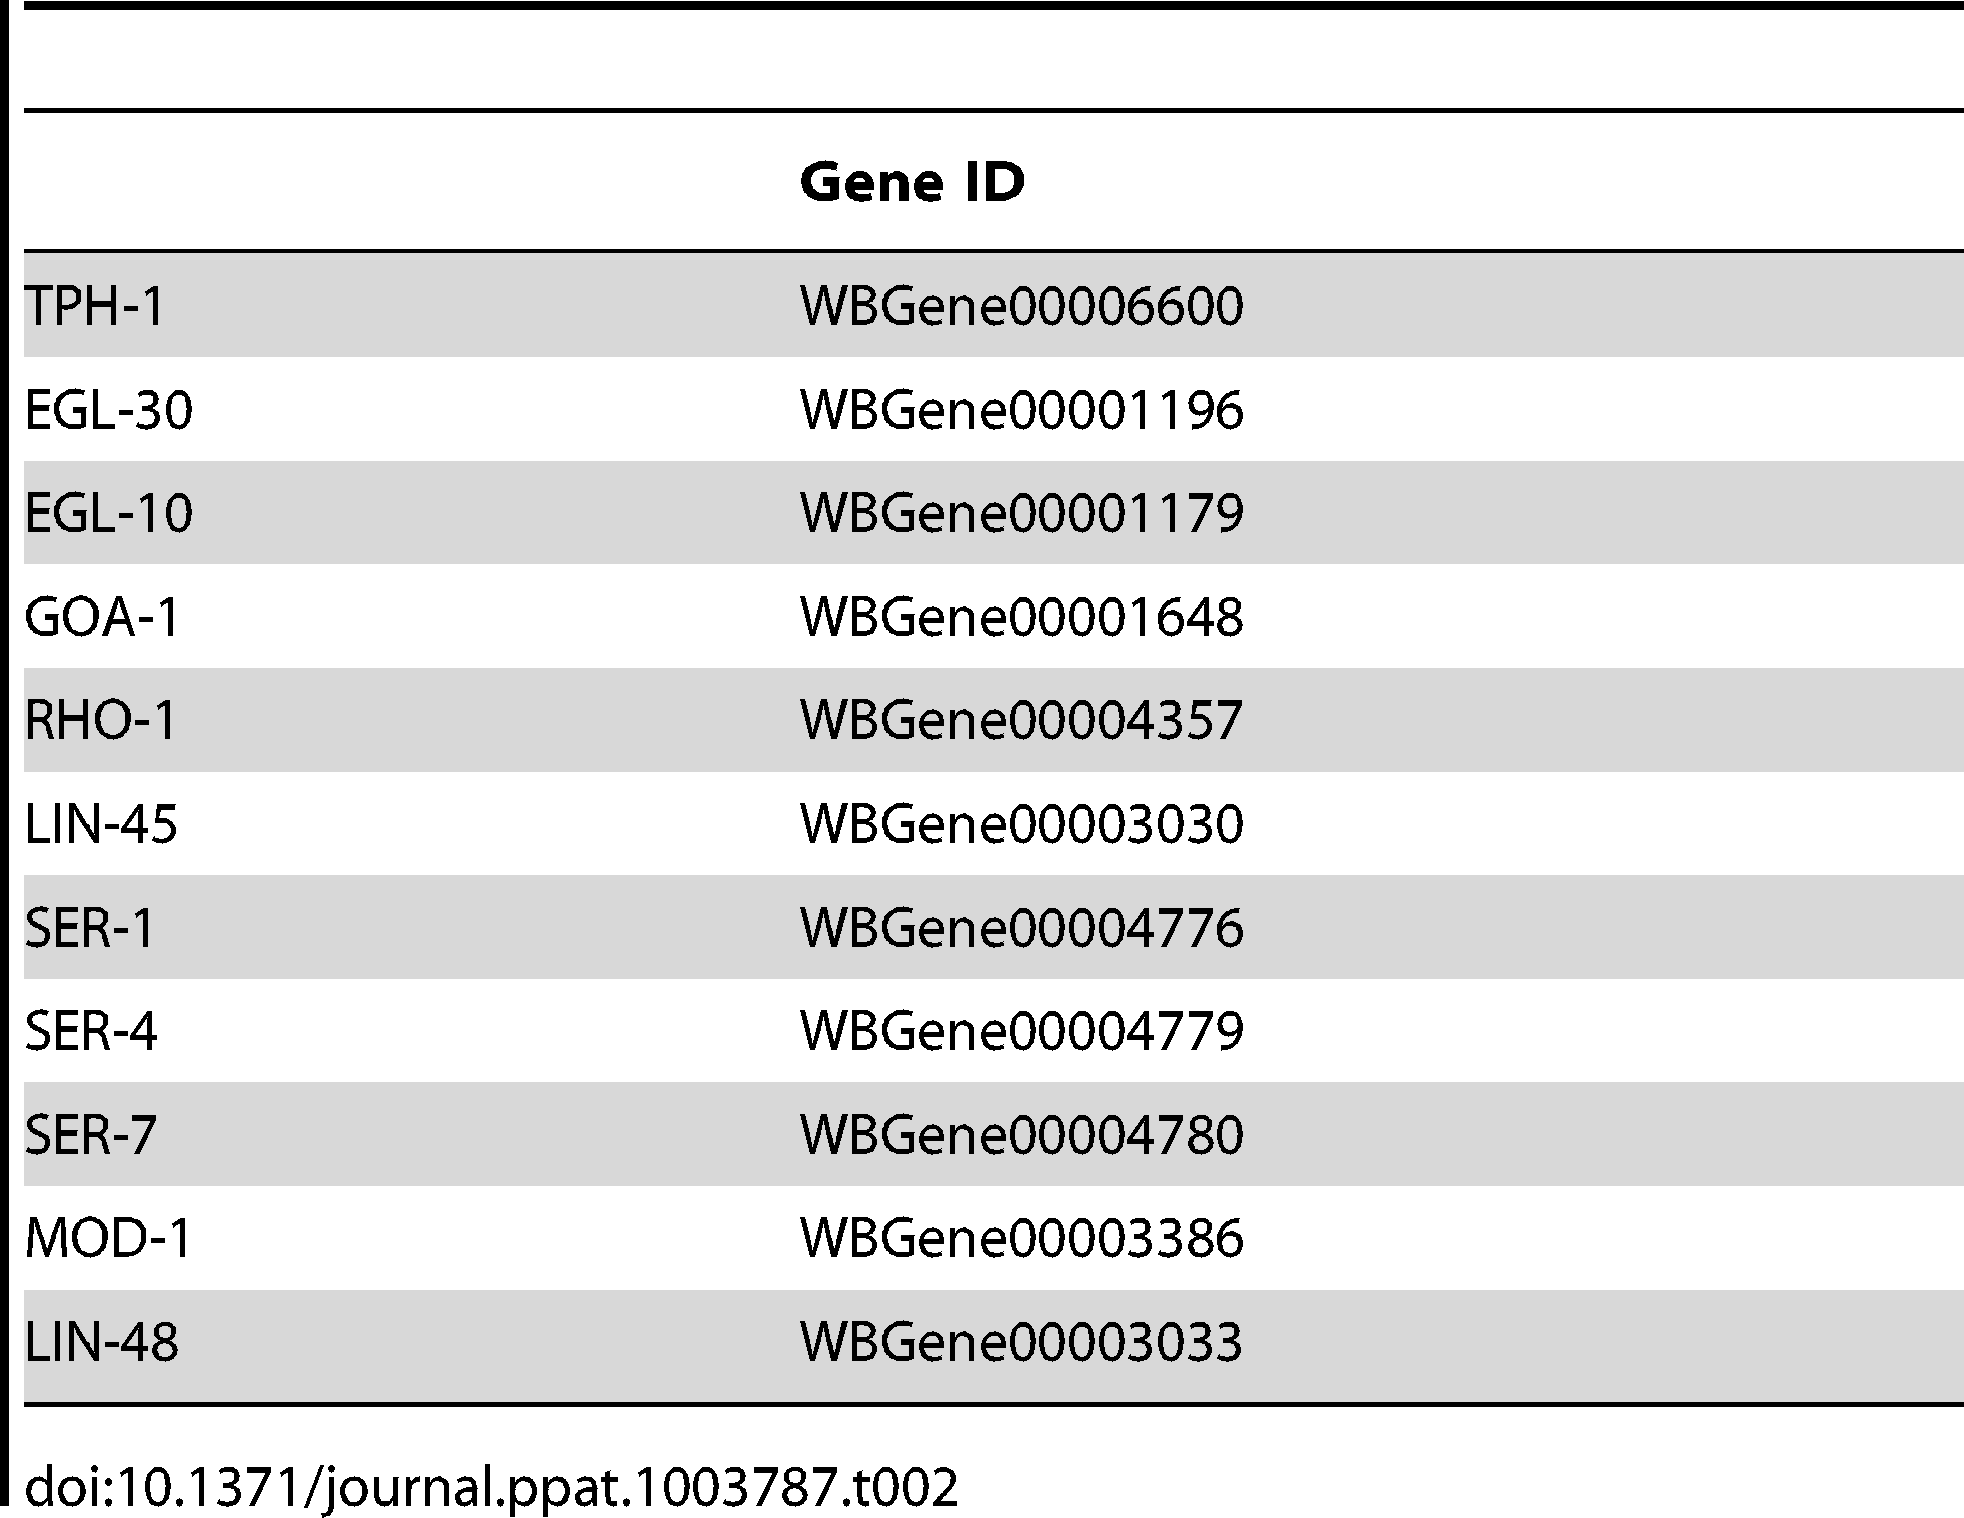 """Gene ID numbers from WormBase (<a href=""""http://www.wormbase.org"""">www.wormbase.org</a>)."""